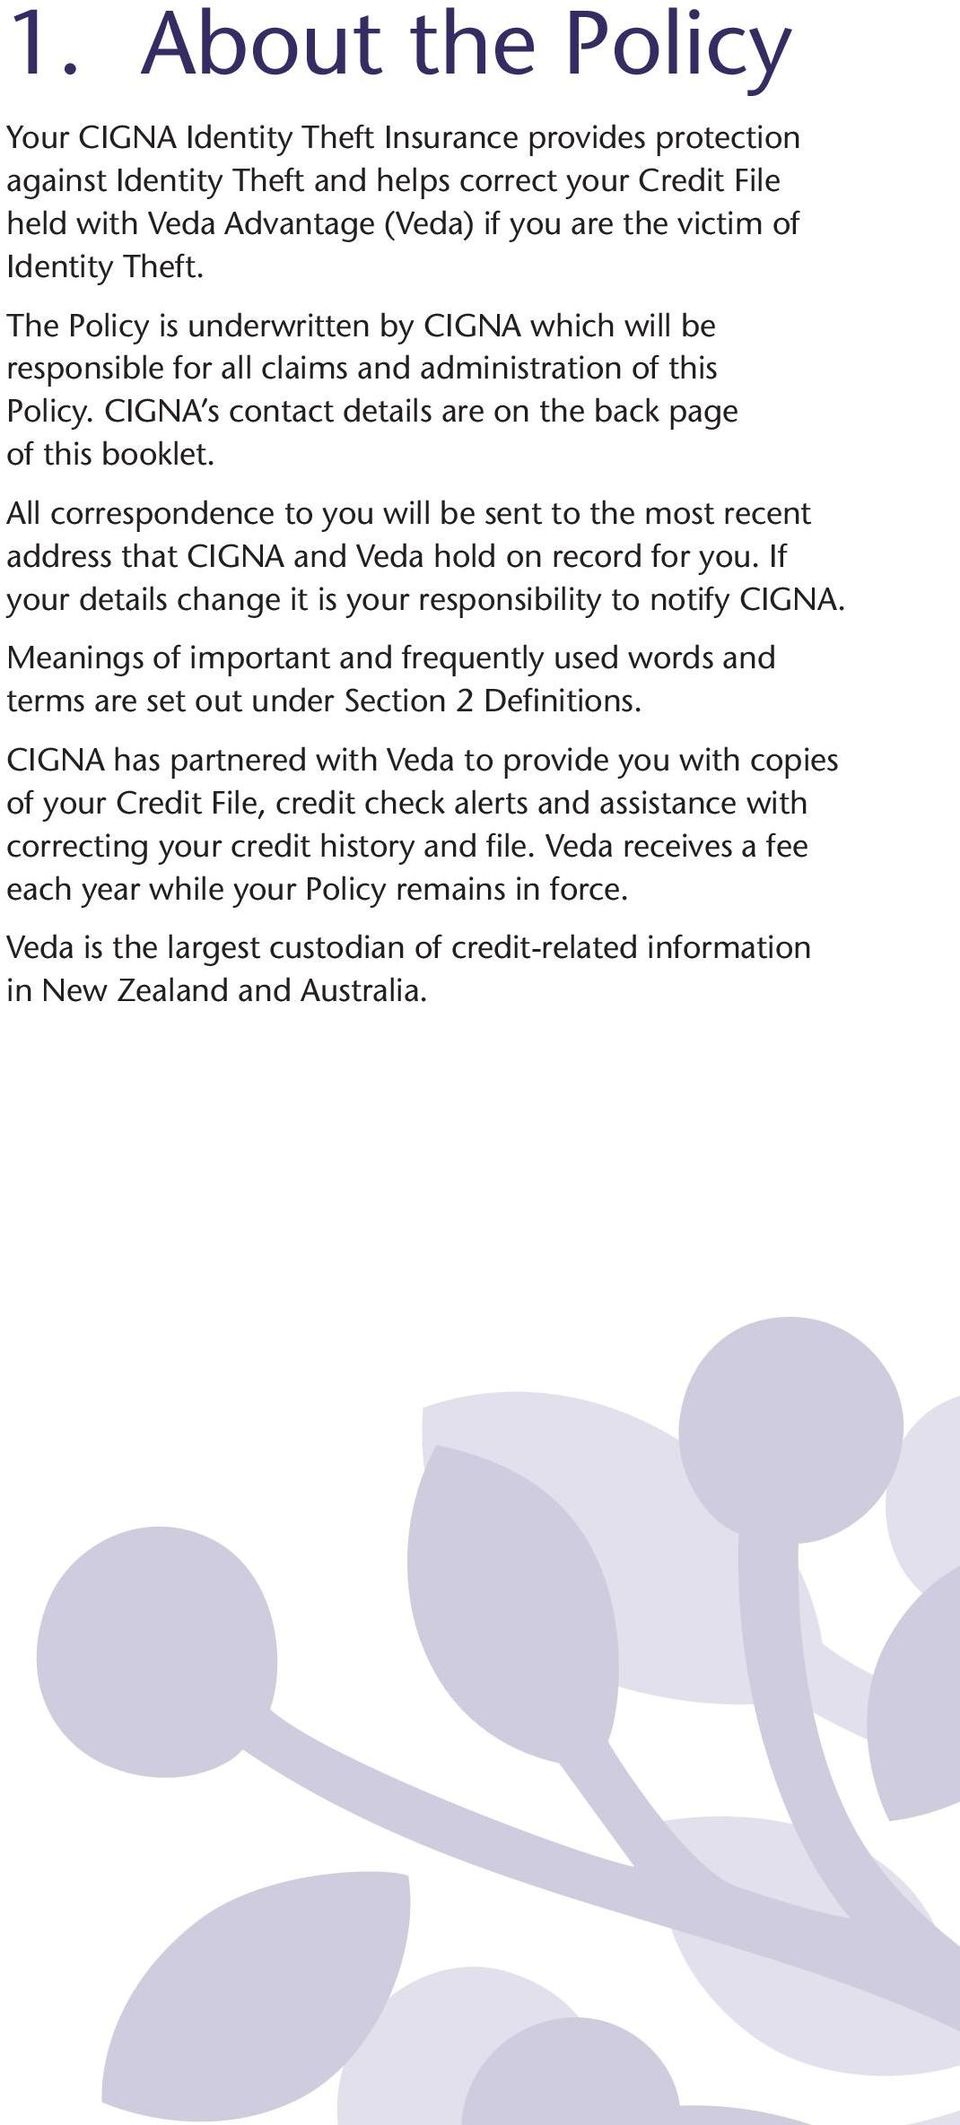 All correspondence to you will be sent to the most recent address that CIGNA and Veda hold on record for you. If your details change it is your responsibility to notify CIGNA.